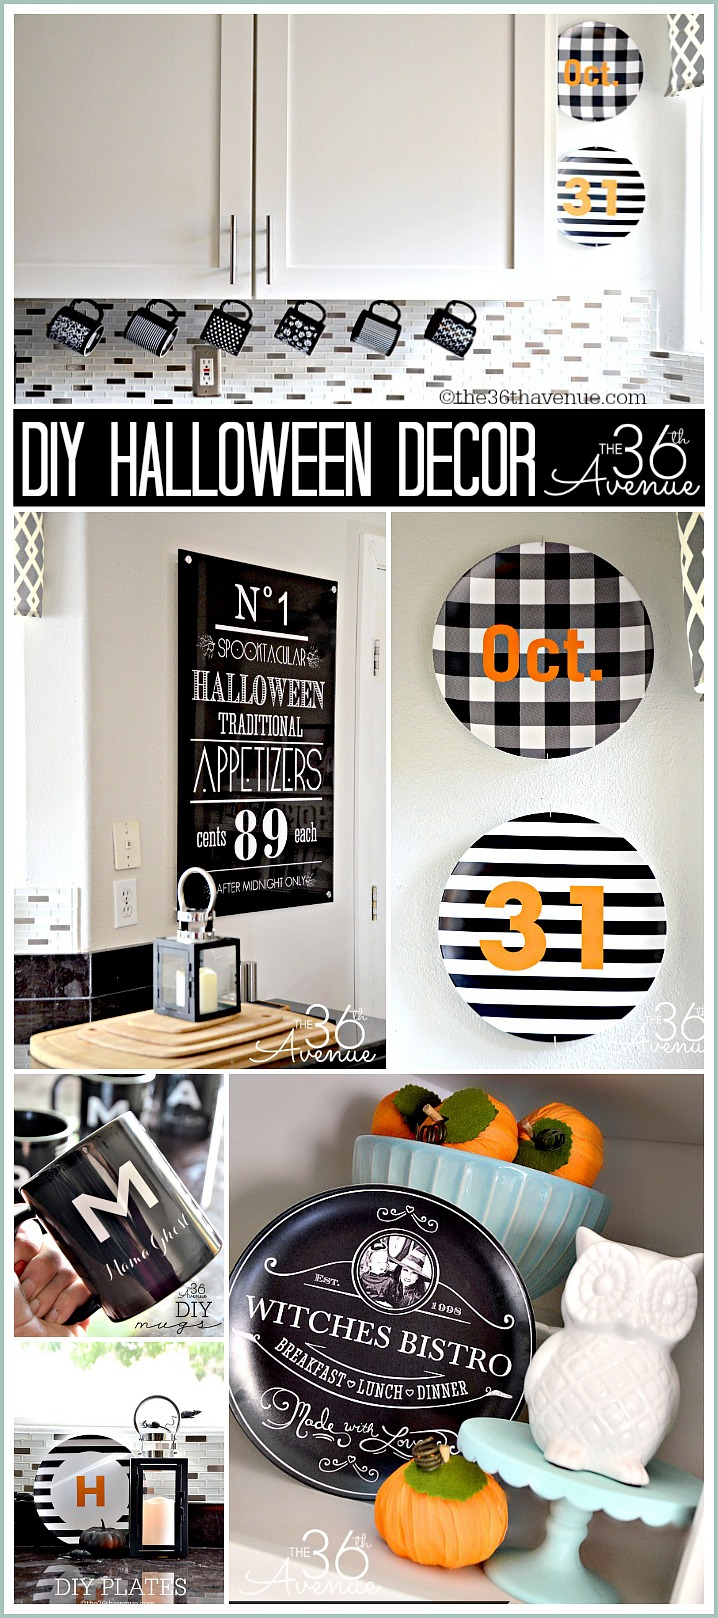 Halloween Decor Ideas by the36thavenue.com